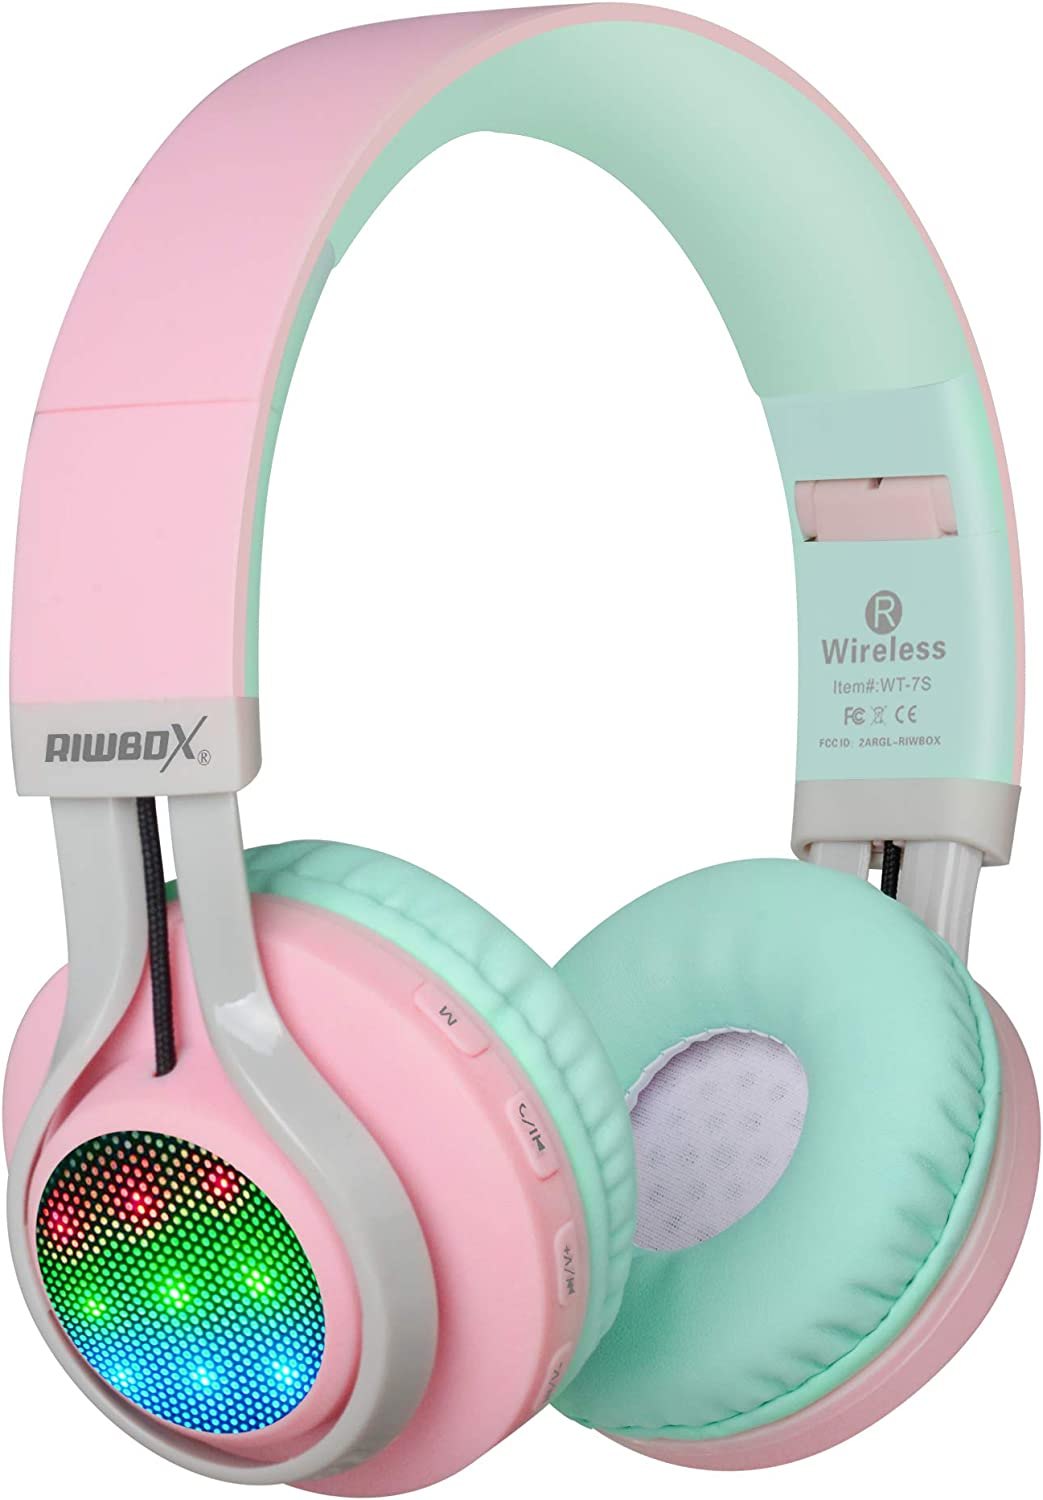 Auriculares Riwbox WT 7S inalámbricos con Bluetooth, luz LED, plegables, con micrófono y control de volumen para PC, iPhone, TV, iPad Rosa&Verde